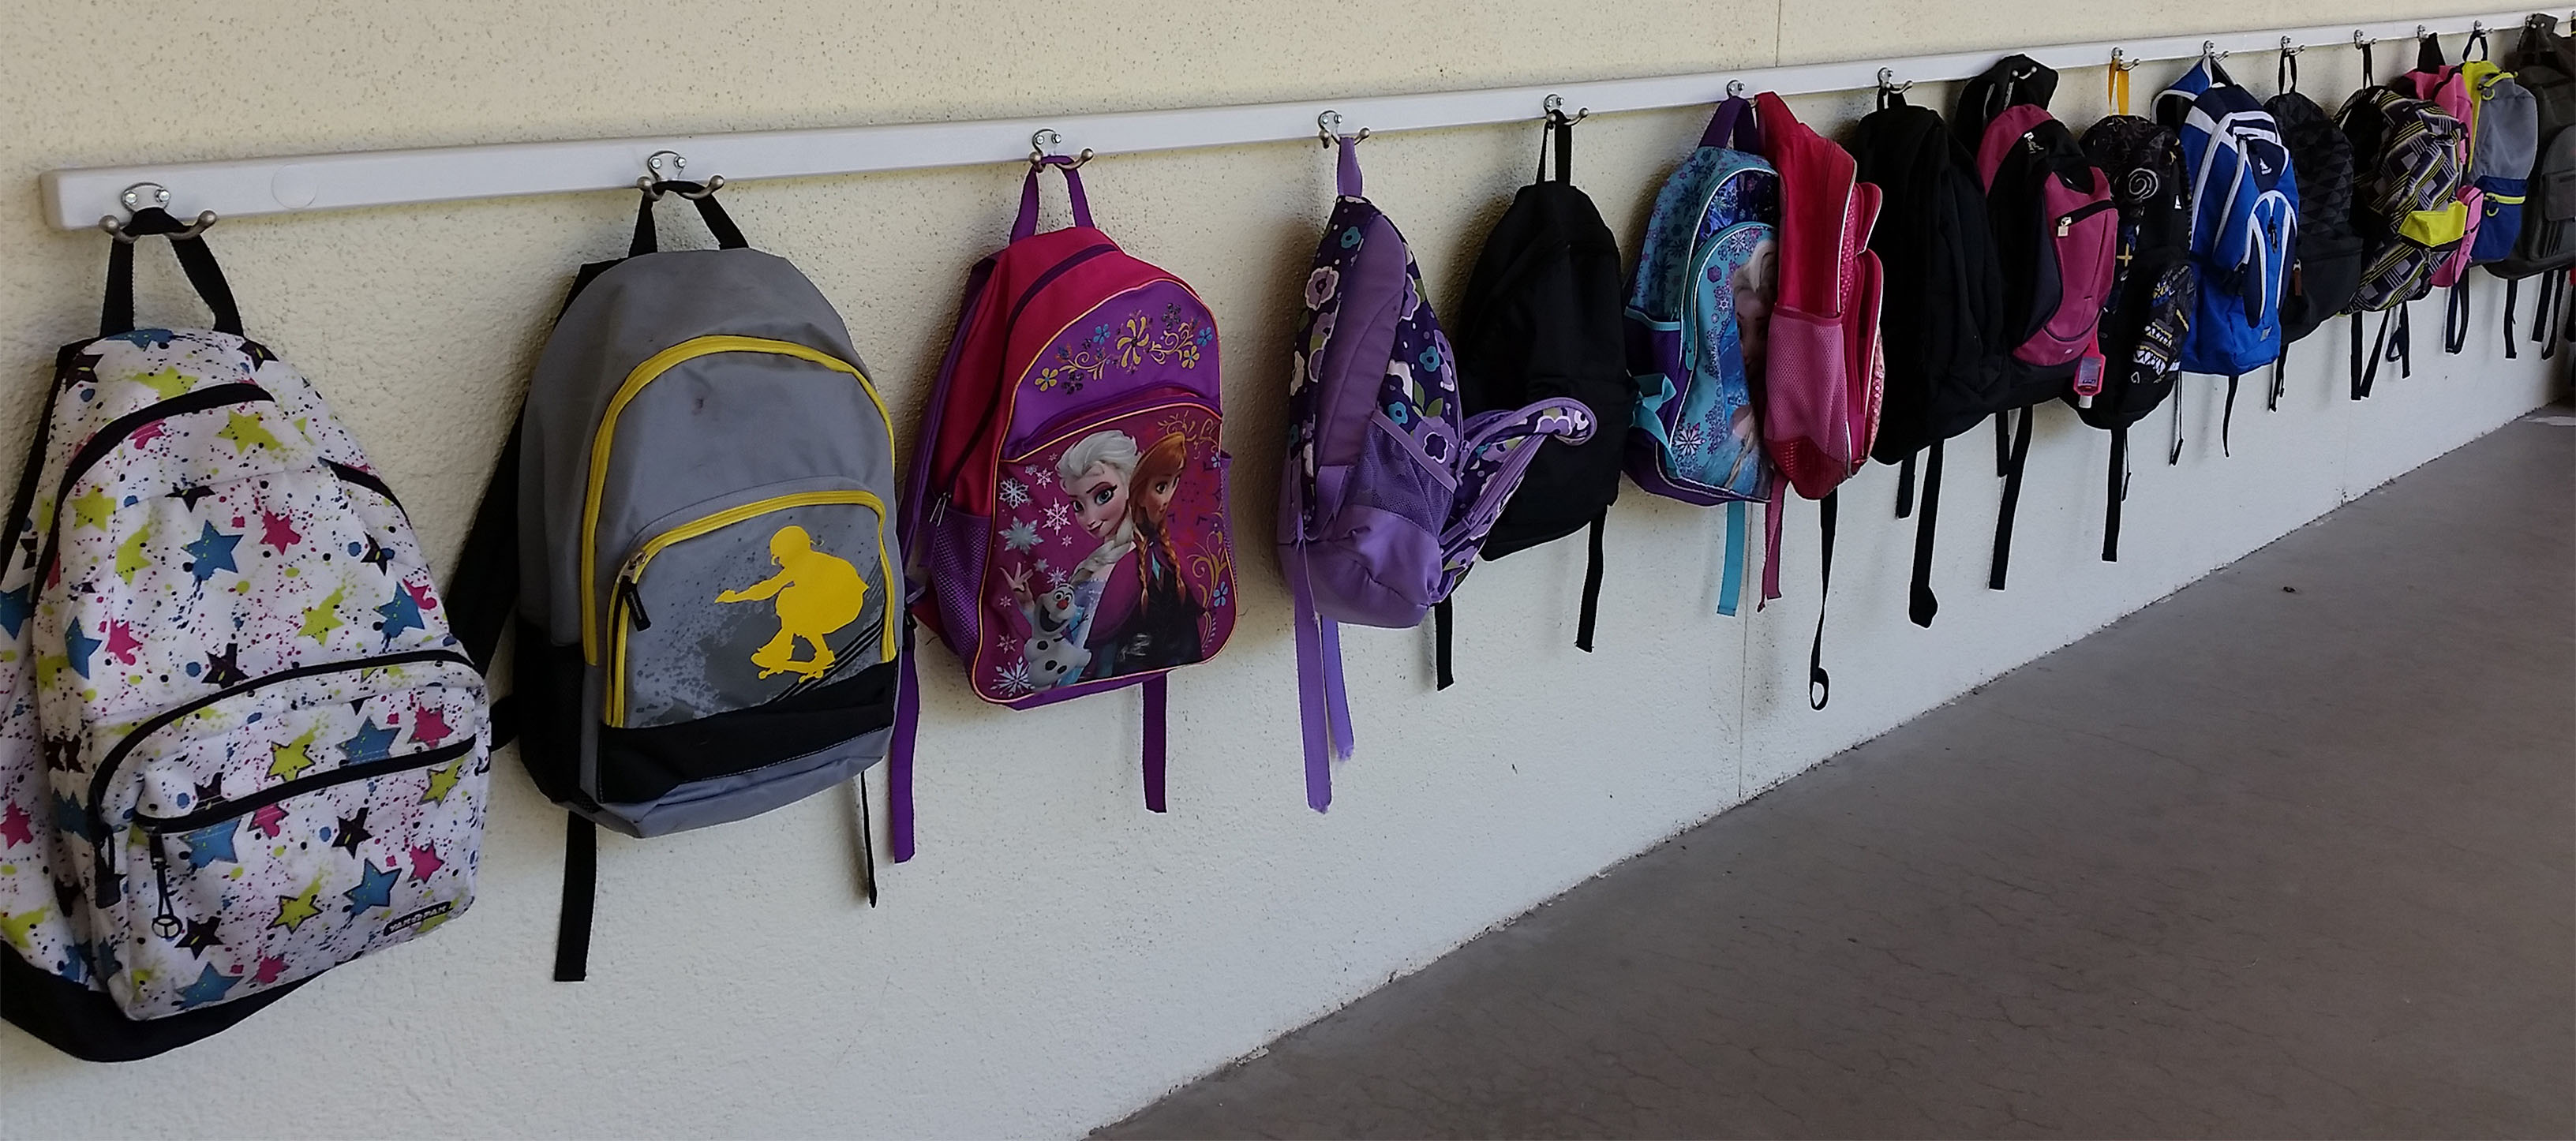 Children's backpacks are neatly hung up at school